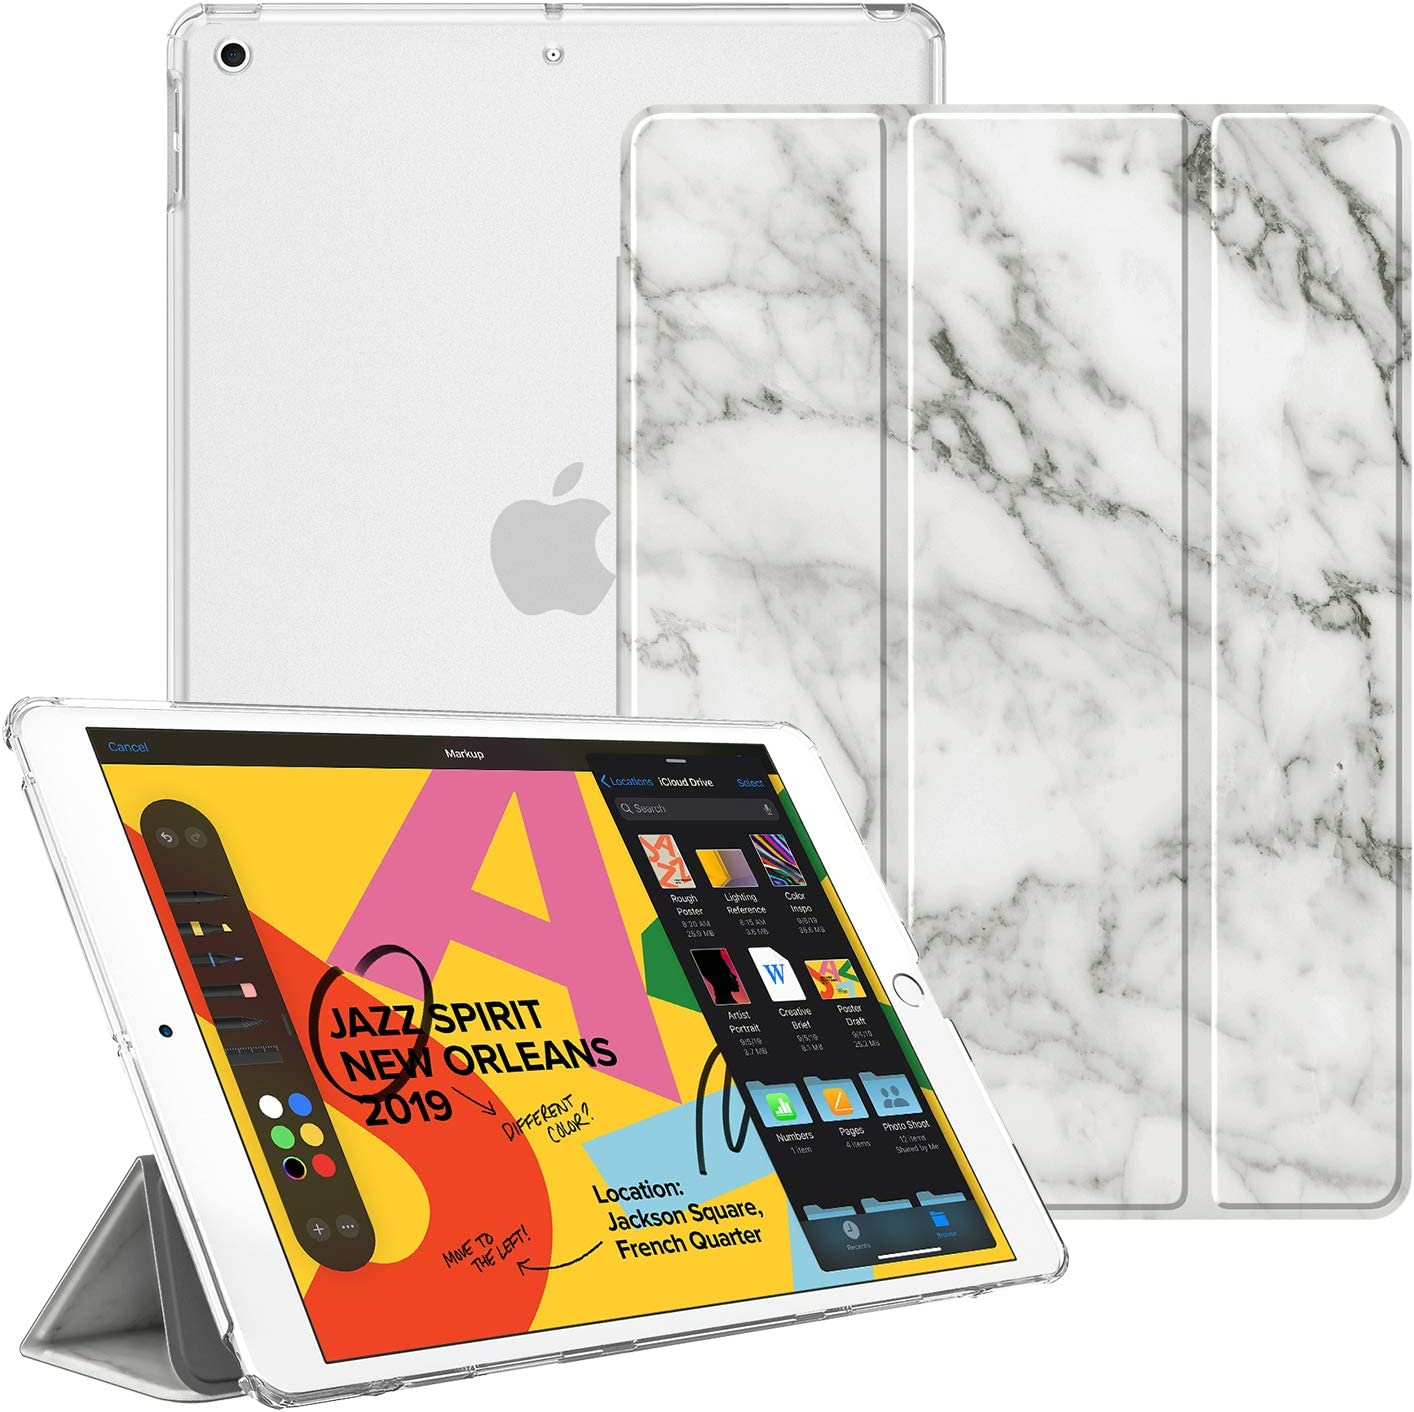 "Fintie Case for New iPad 7th Generation 10.2 Inch 2019 - Lightweight Slim Shell Stand with Translucent Frosted Back Cover Supports Auto Wake/Sleep for iPad 10.2"" 2019 Tablet, Marble White"